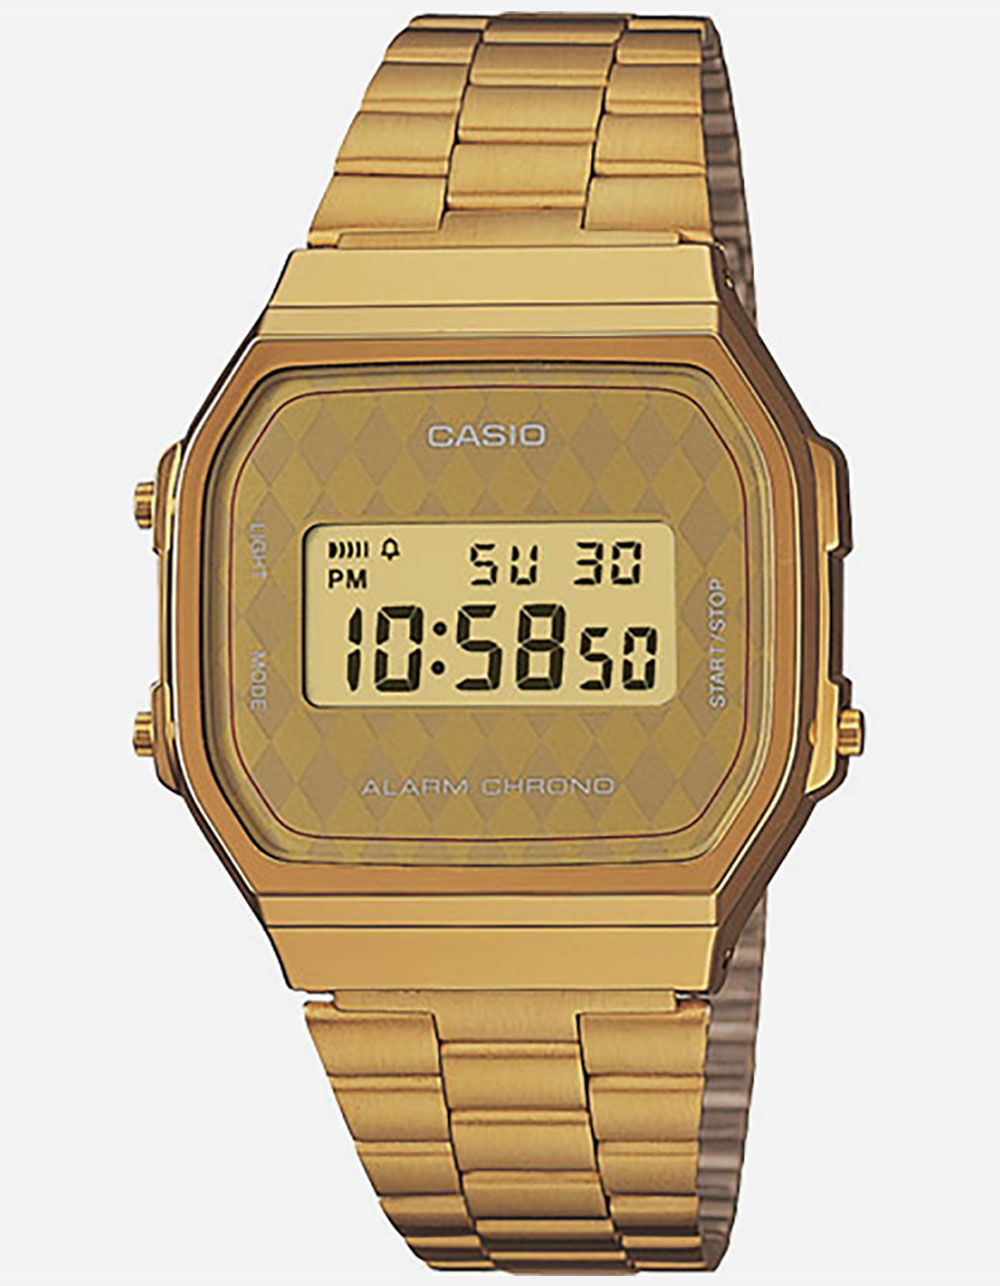 CASIO Vintage Collection A168WG-9BVT Watch